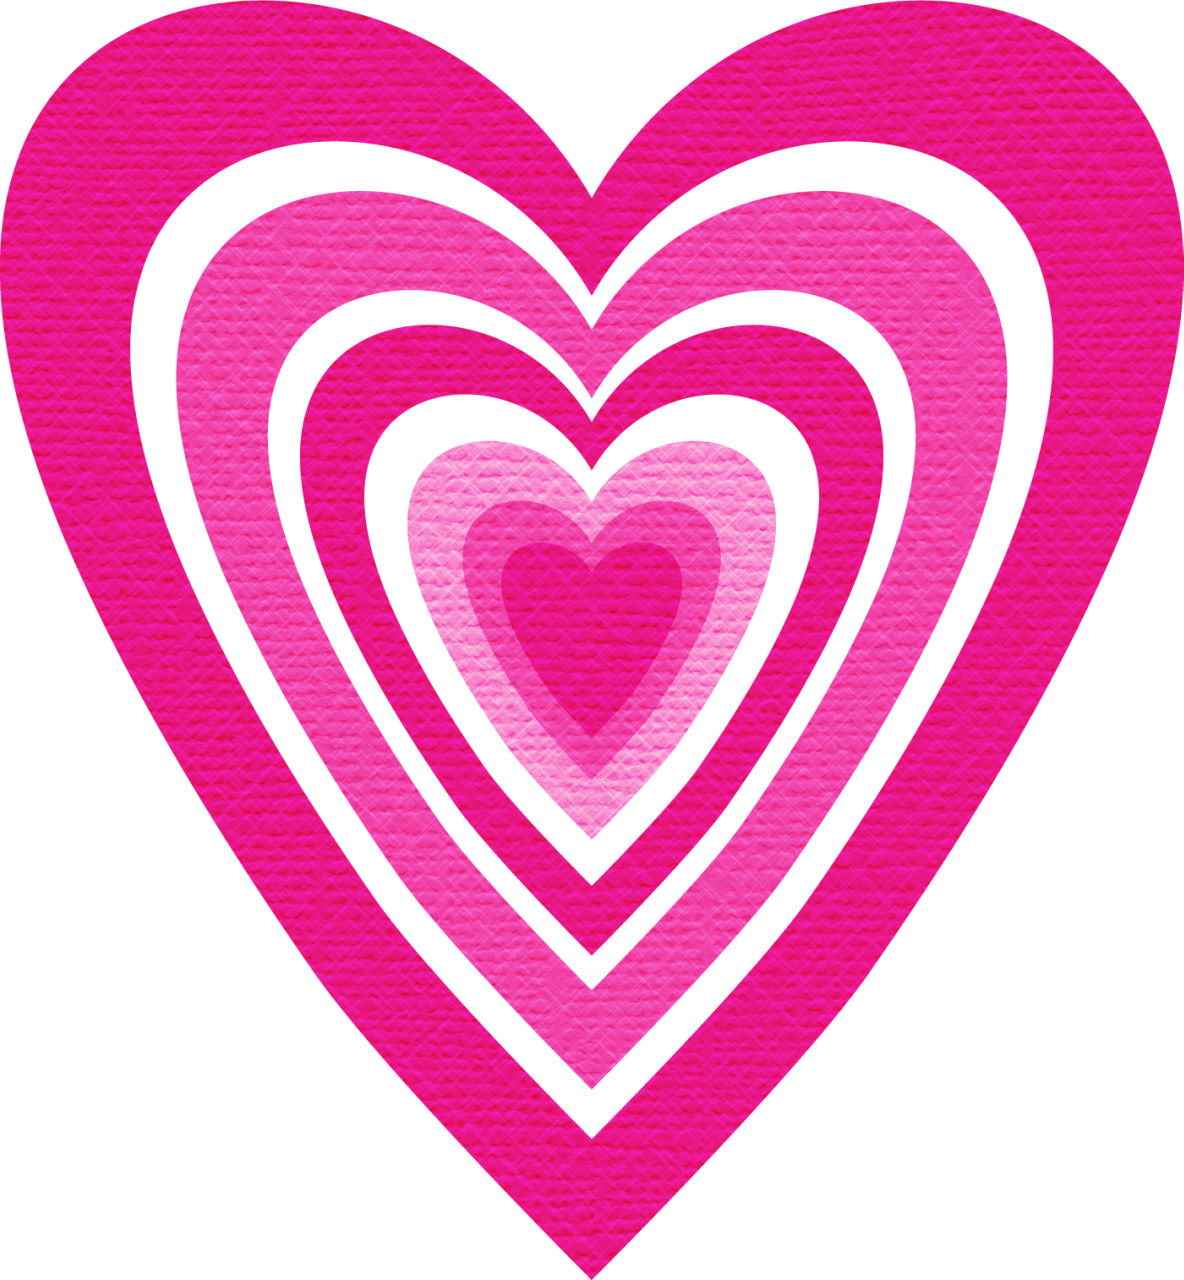 Pin by Debbie Vargas on Pink Hearts Love symbols, Pink